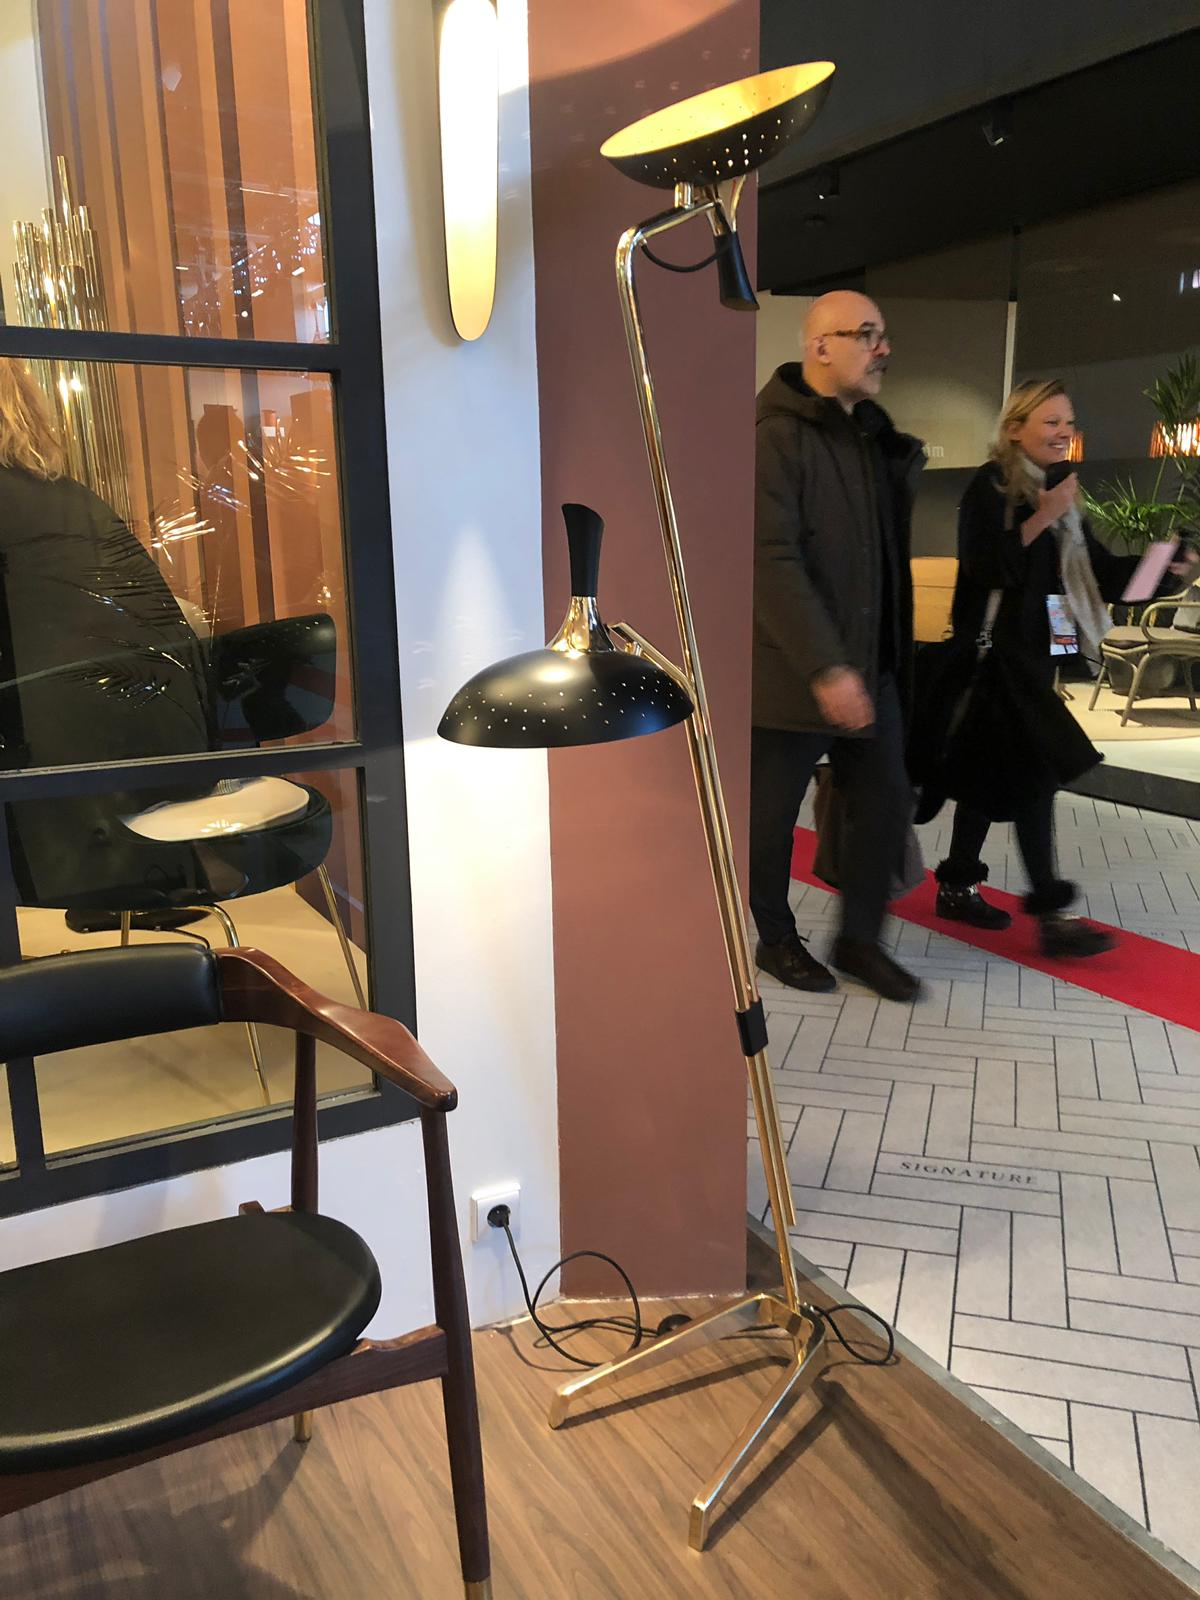 maison et objet 2019 maison et objet 2019 New Lighting Pieces That Are Delighting Maison et Objet 2019! New Lighting Pieces That Are Delighting Maison et Objet 5